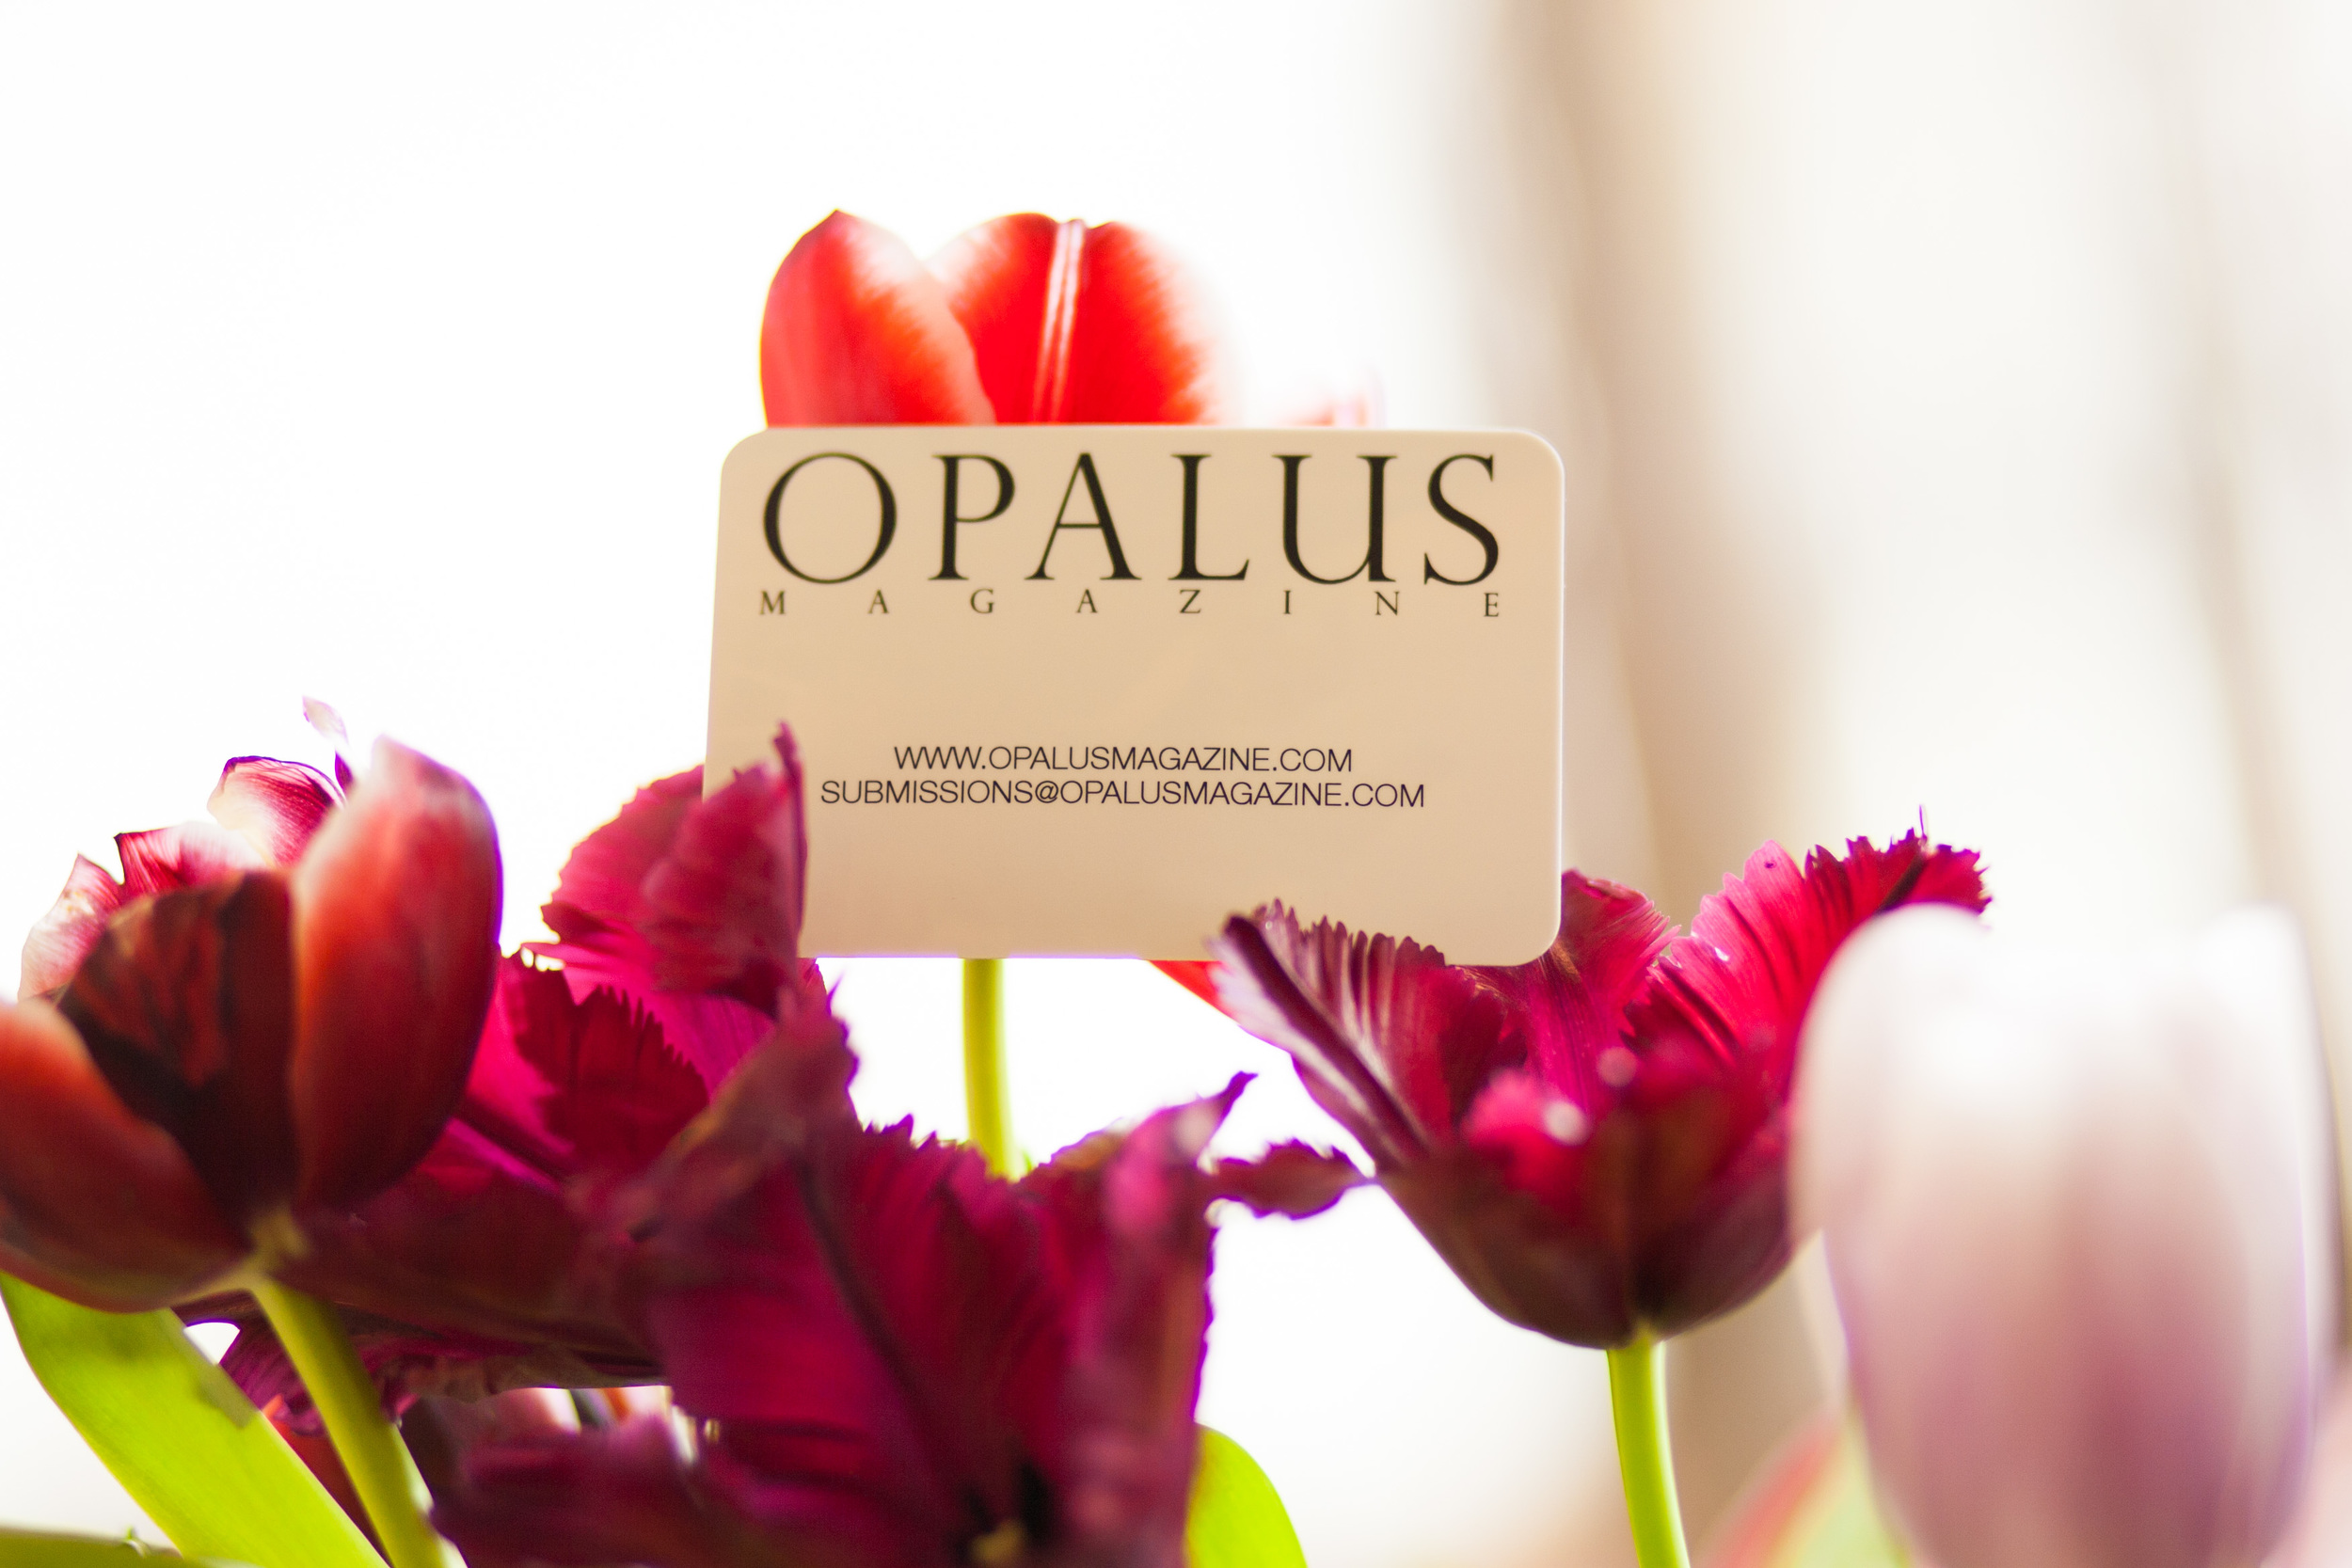 OPALUS_submissions-1.jpg